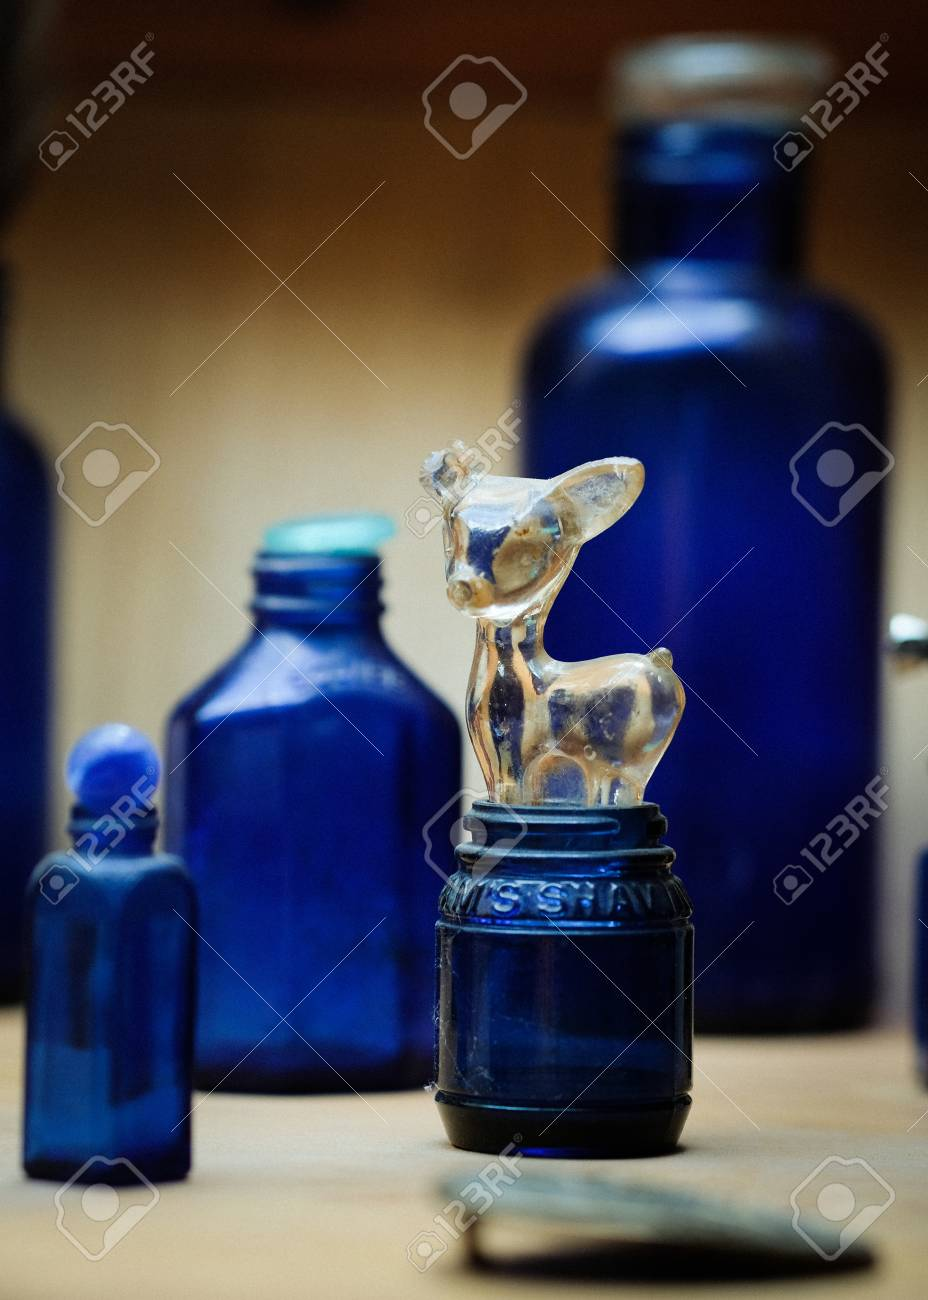 Blue glass bottles and small glass toy from the Wild West period